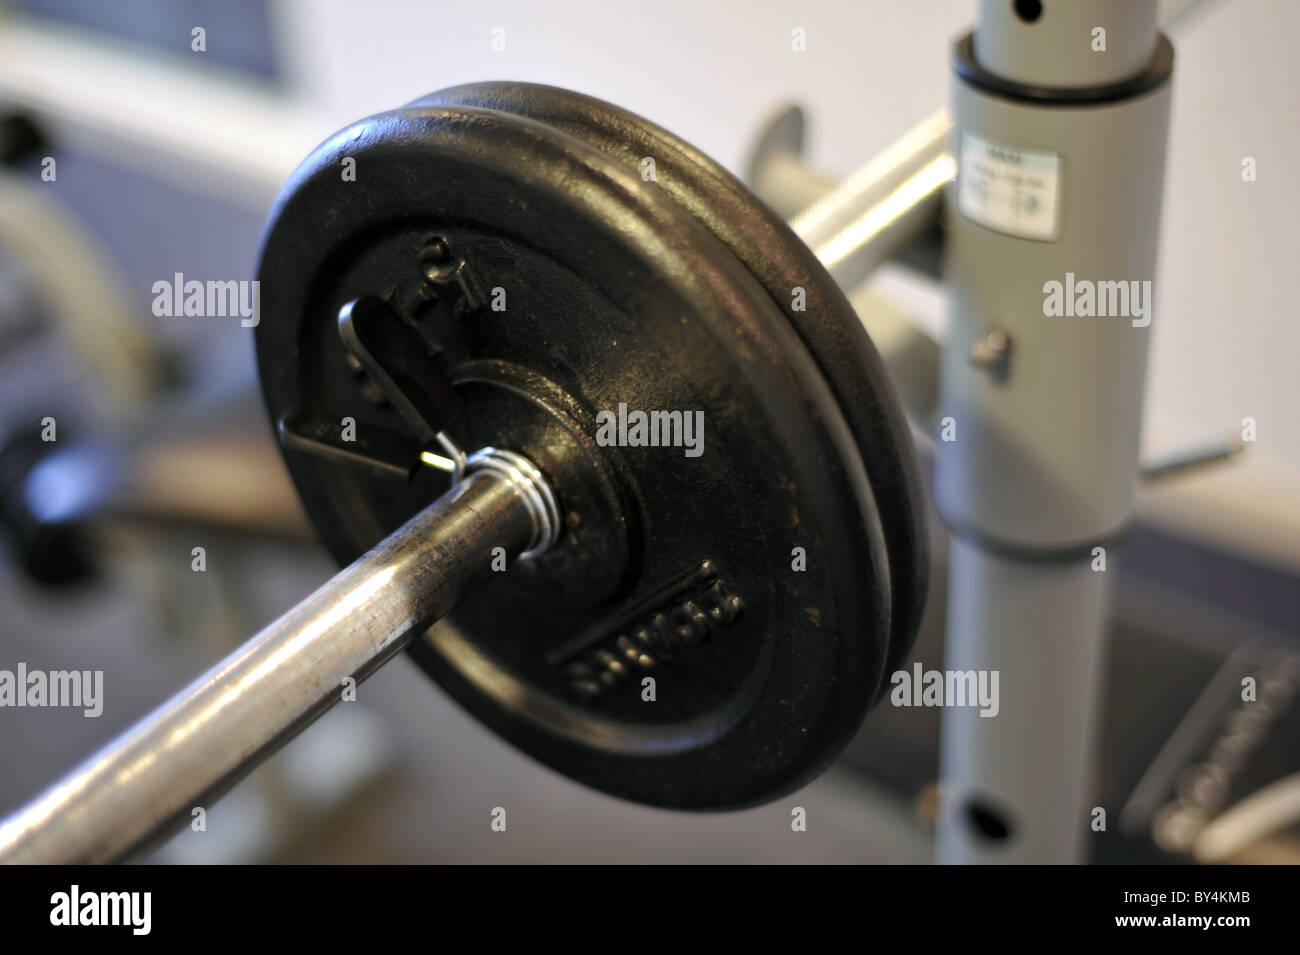 Dumbbell weights placed on the rest at the gymnasium - Stock Image